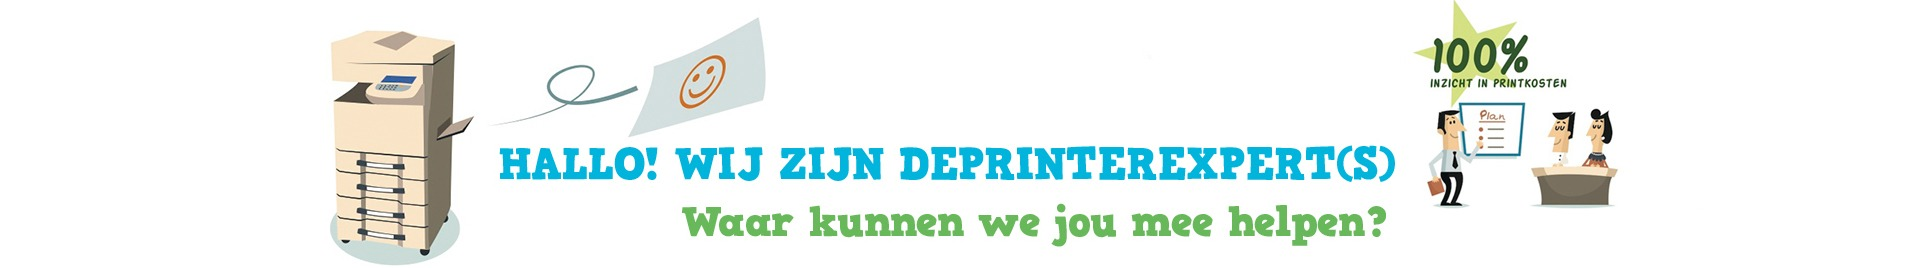 Over ons dePrinterexpert